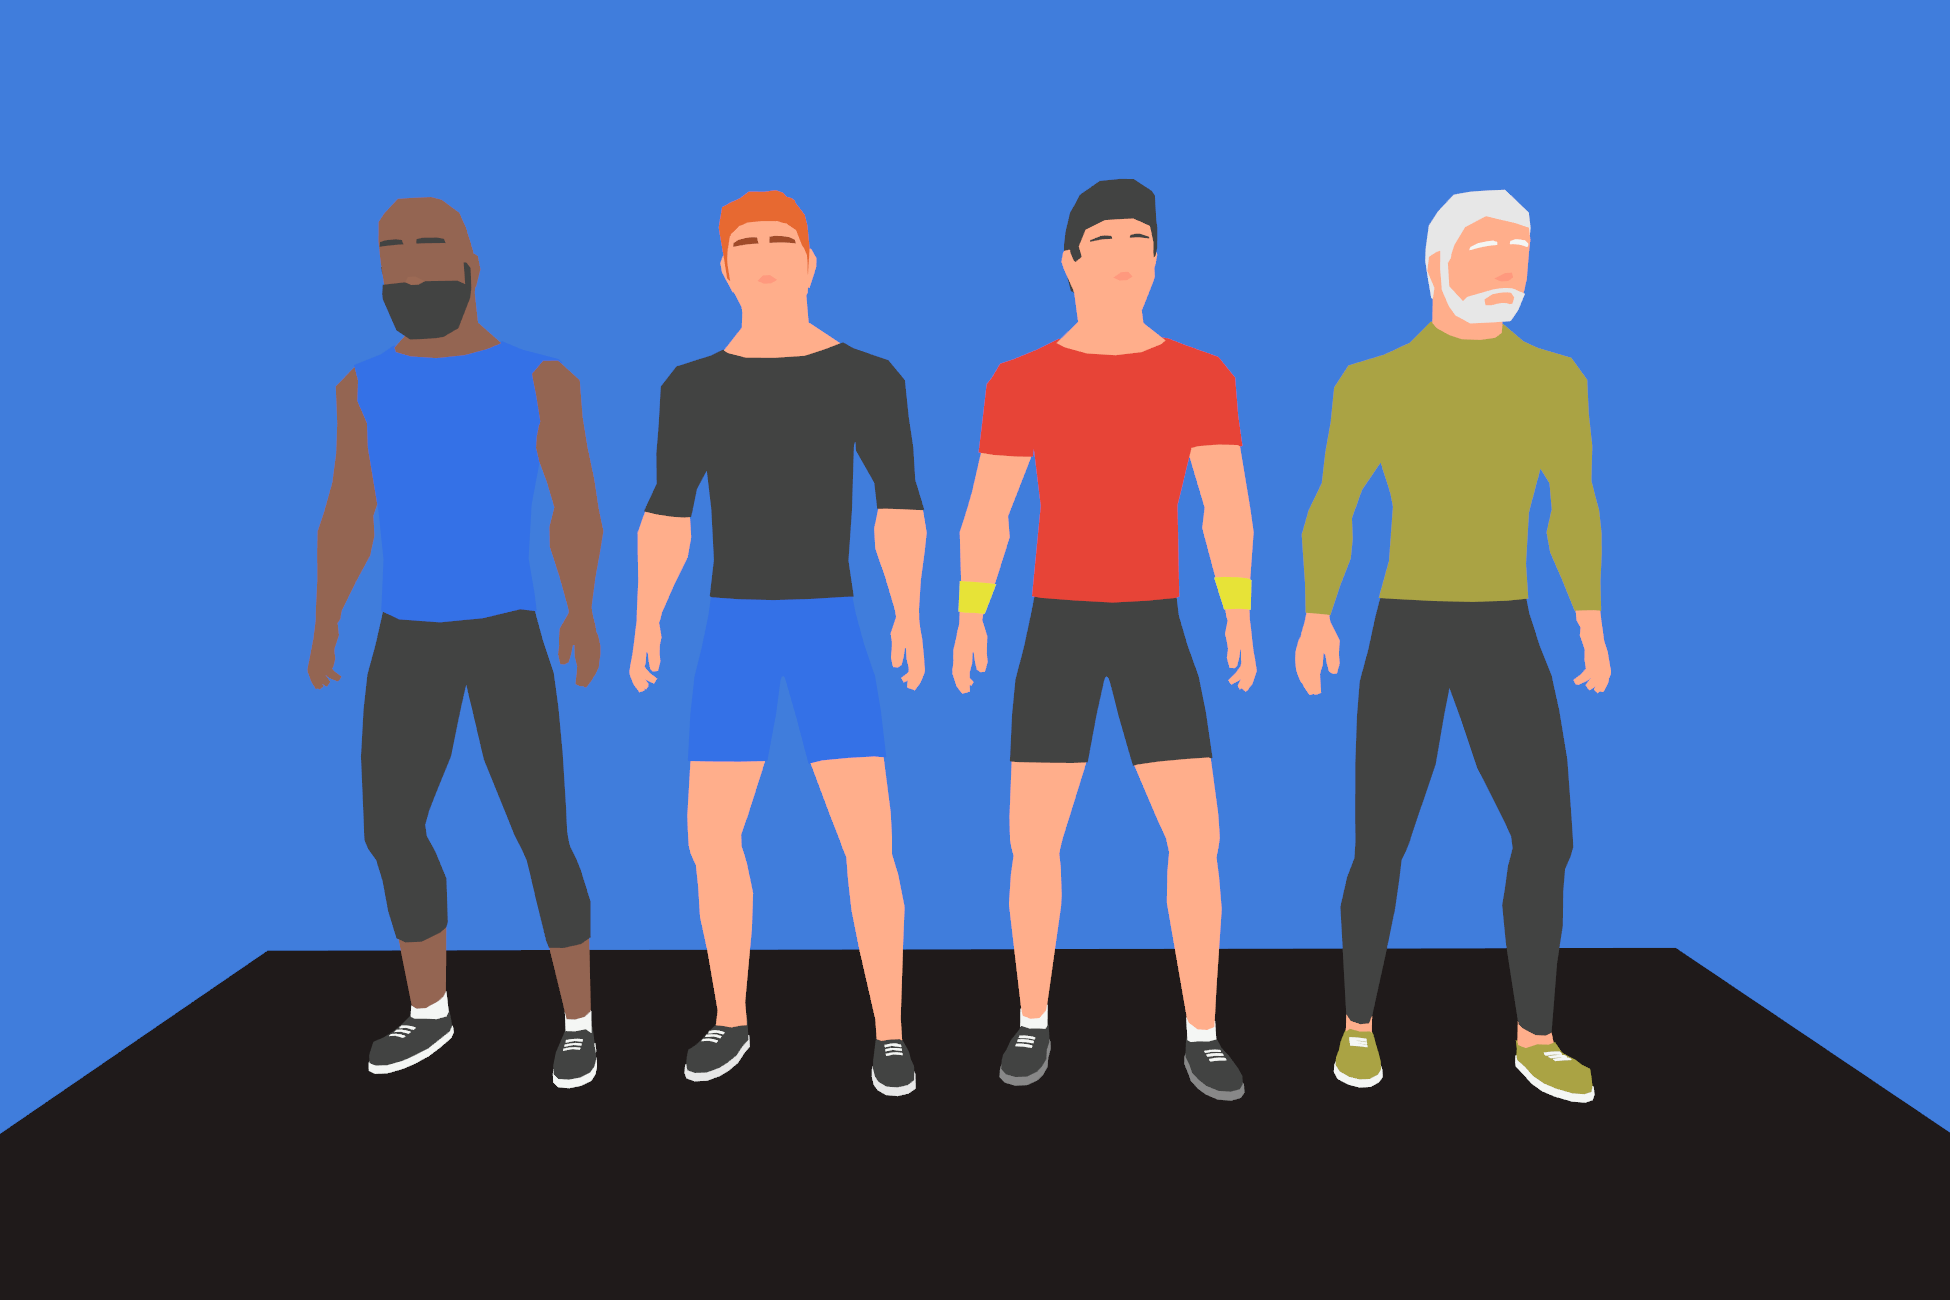 LowPoly Fitness Characters